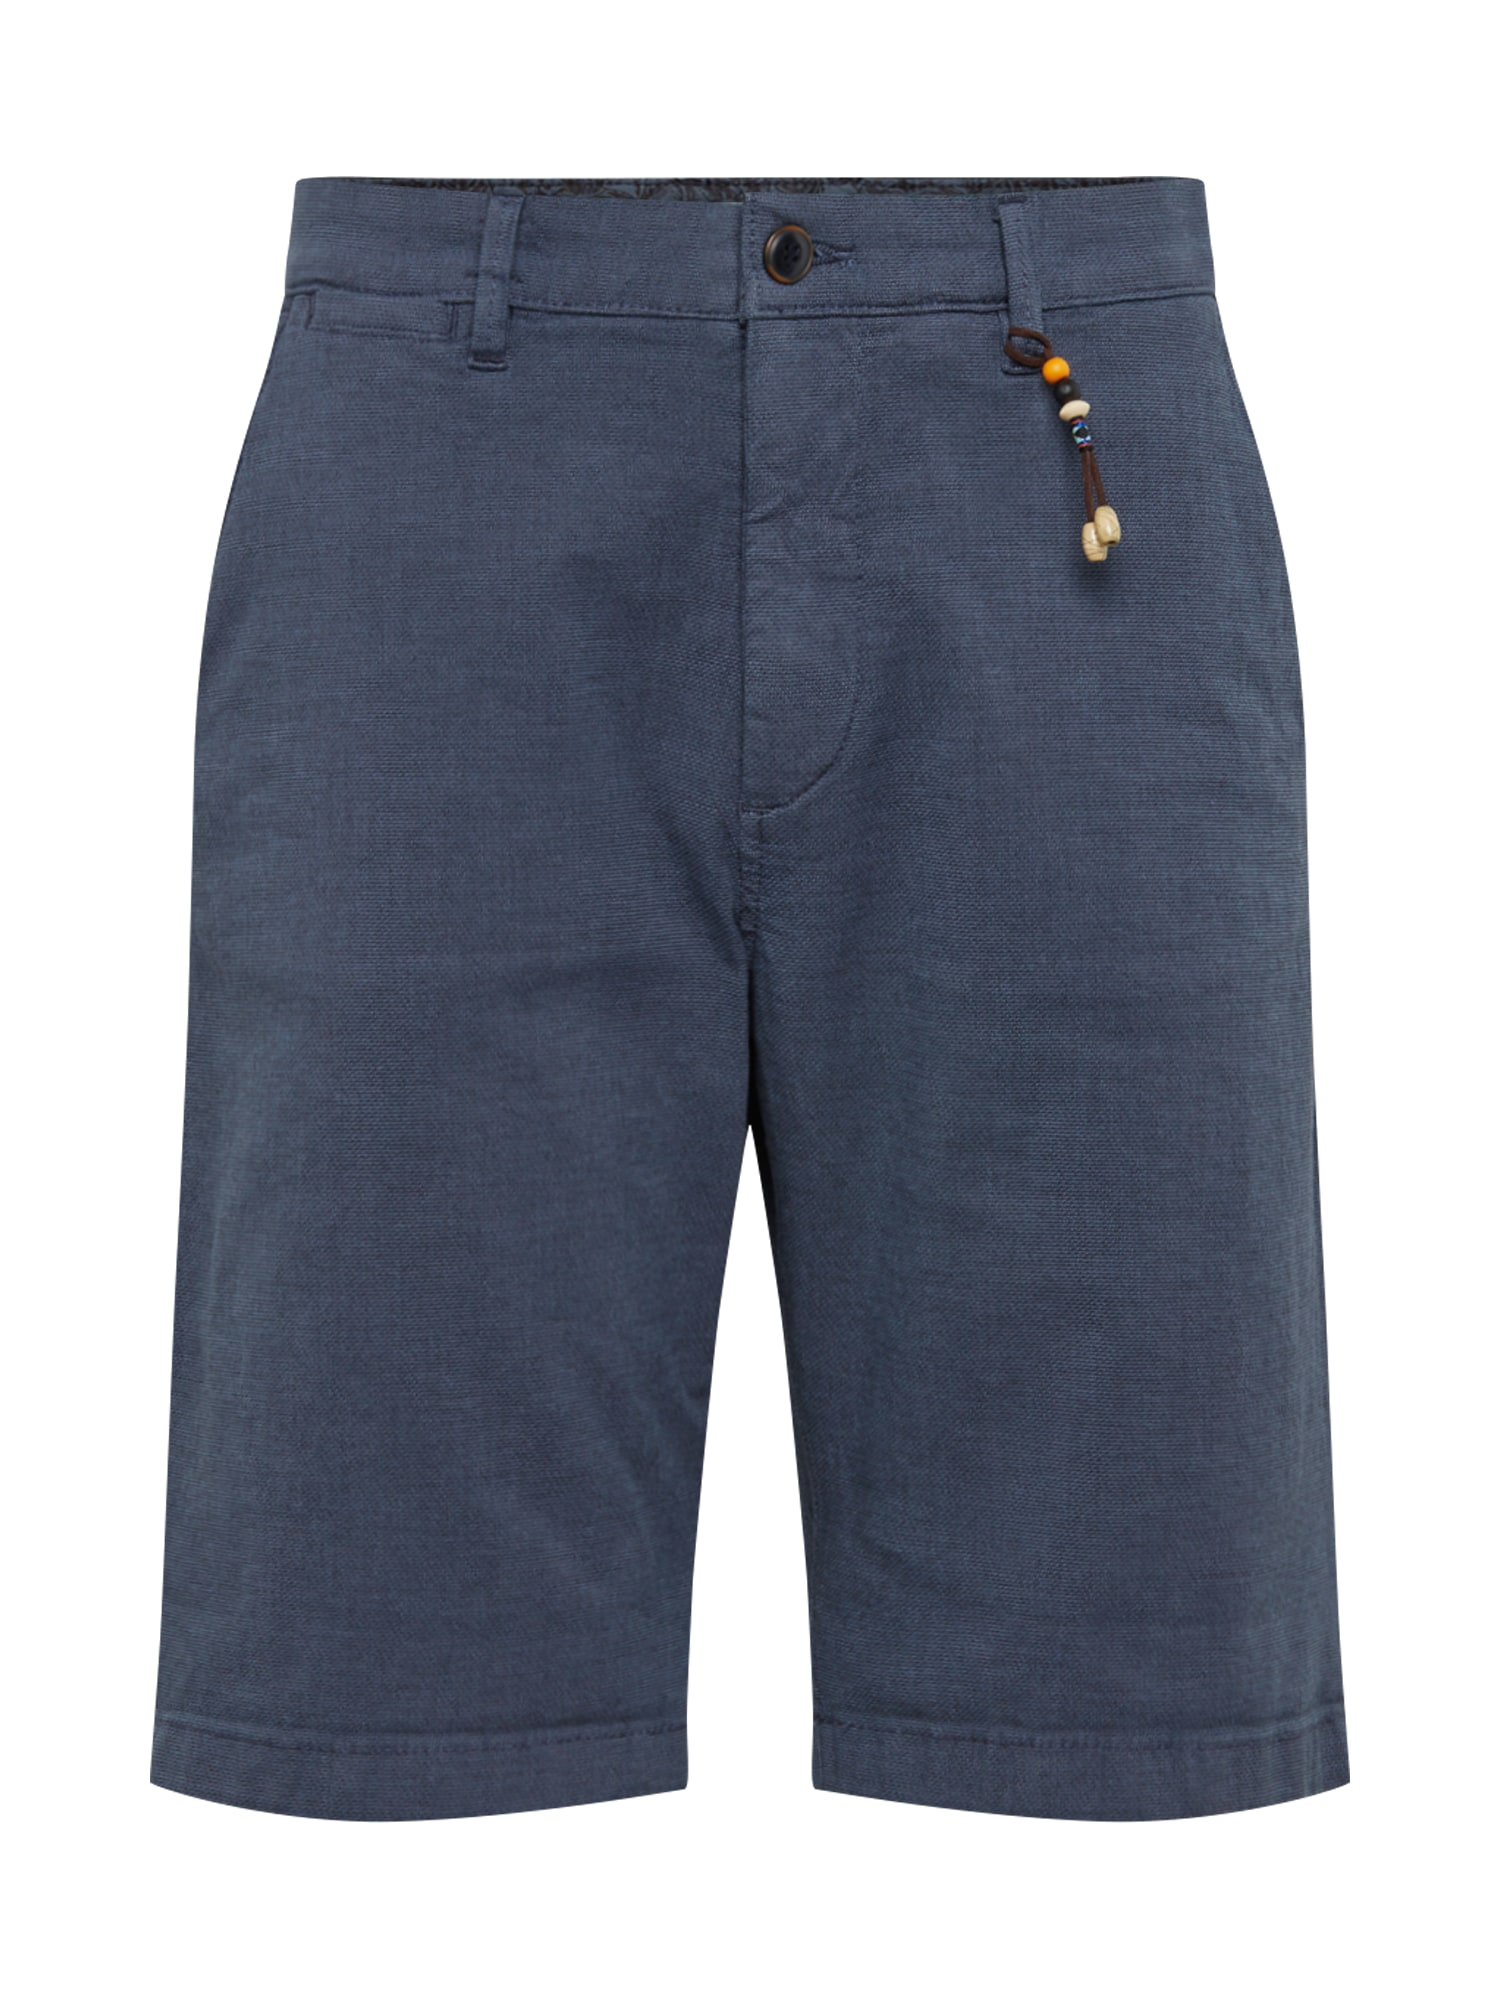 Chino kalhoty JJIKENZO JJCHINO SHORTS AKM 432 indigo JACK & JONES